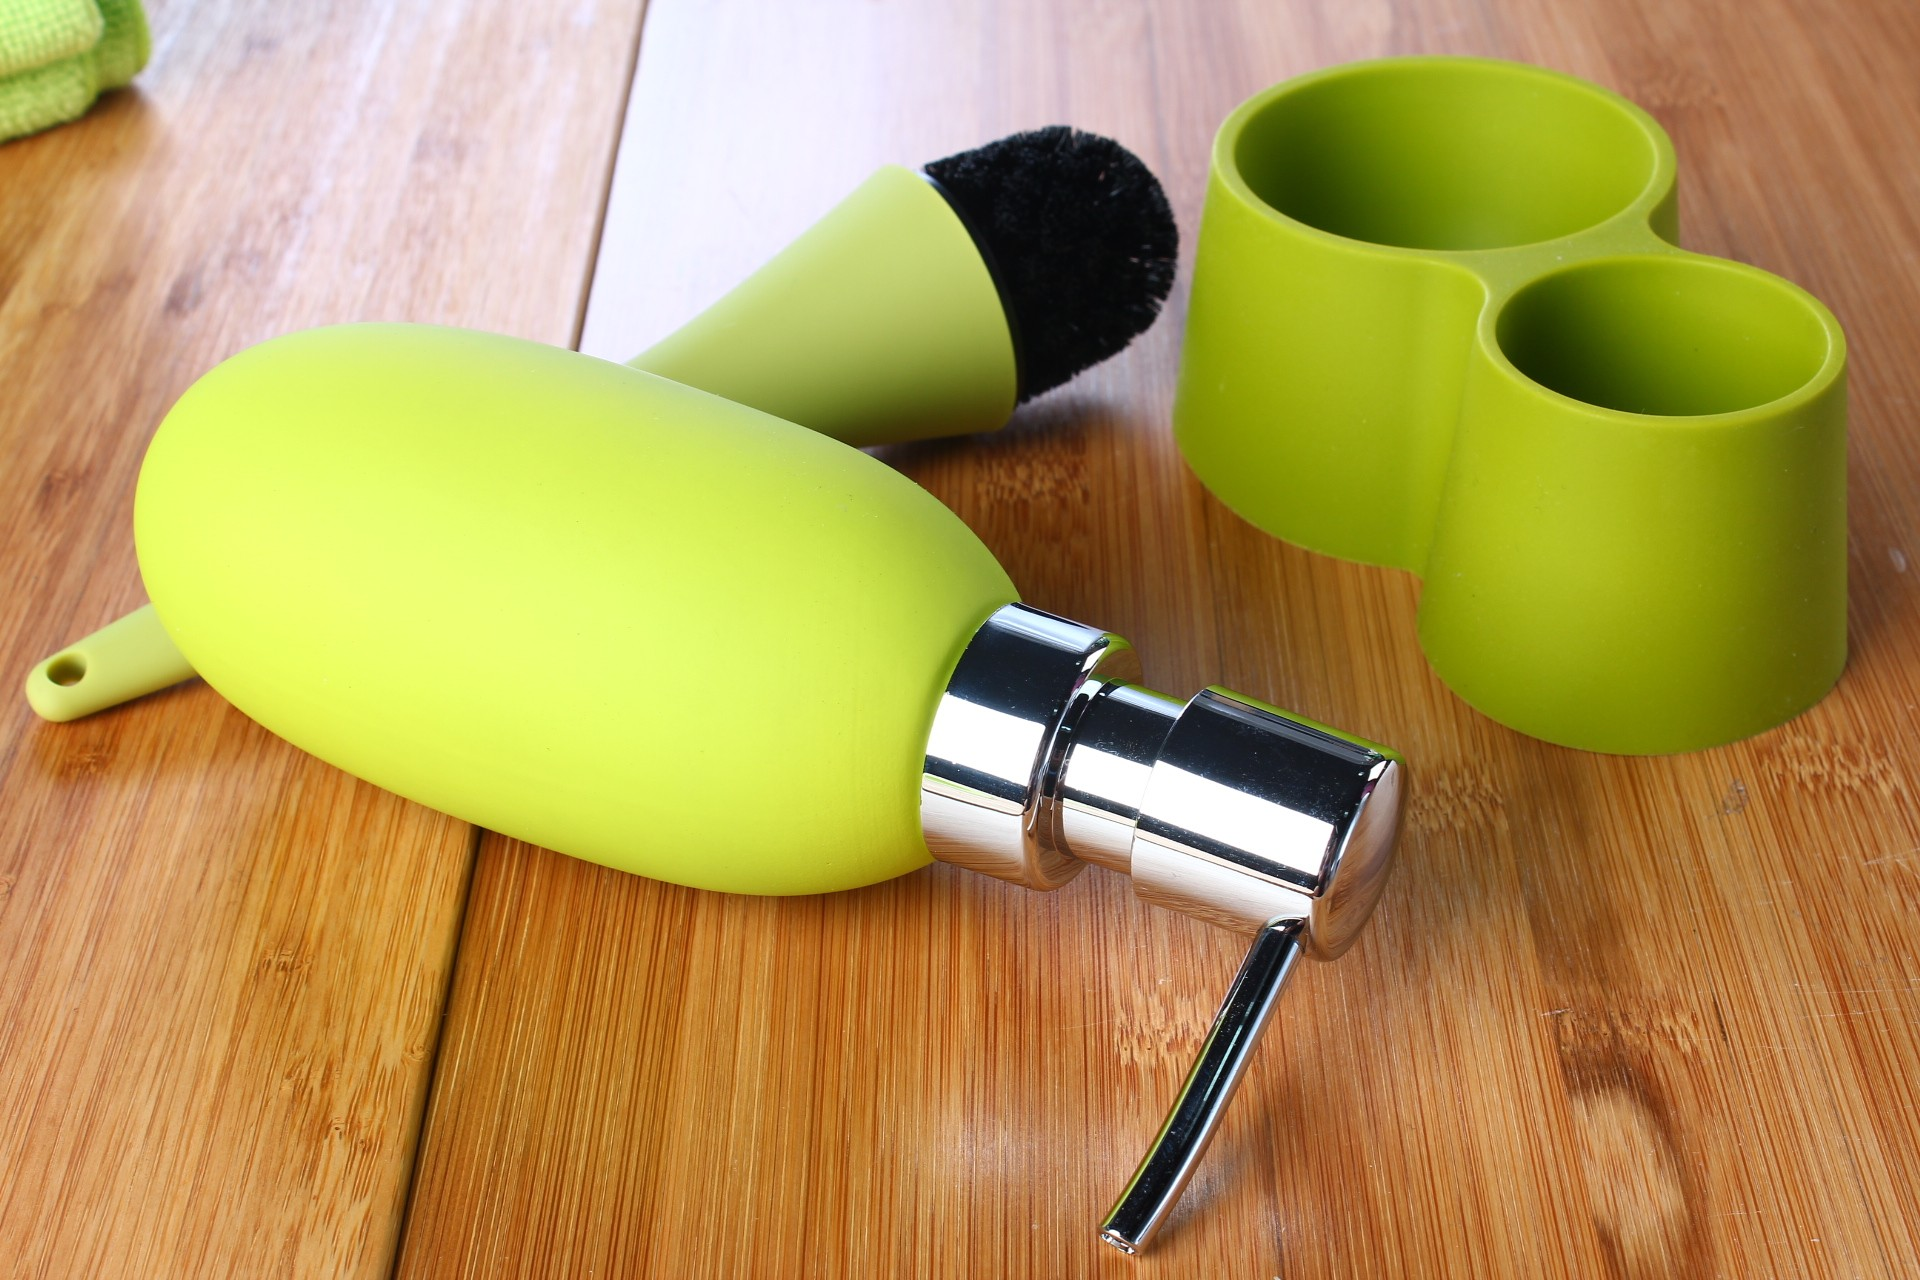 Flow 3-in-1 Soap Dispenser Wash Up Set with Base Tray in Green (6 Dispensers/Lot)